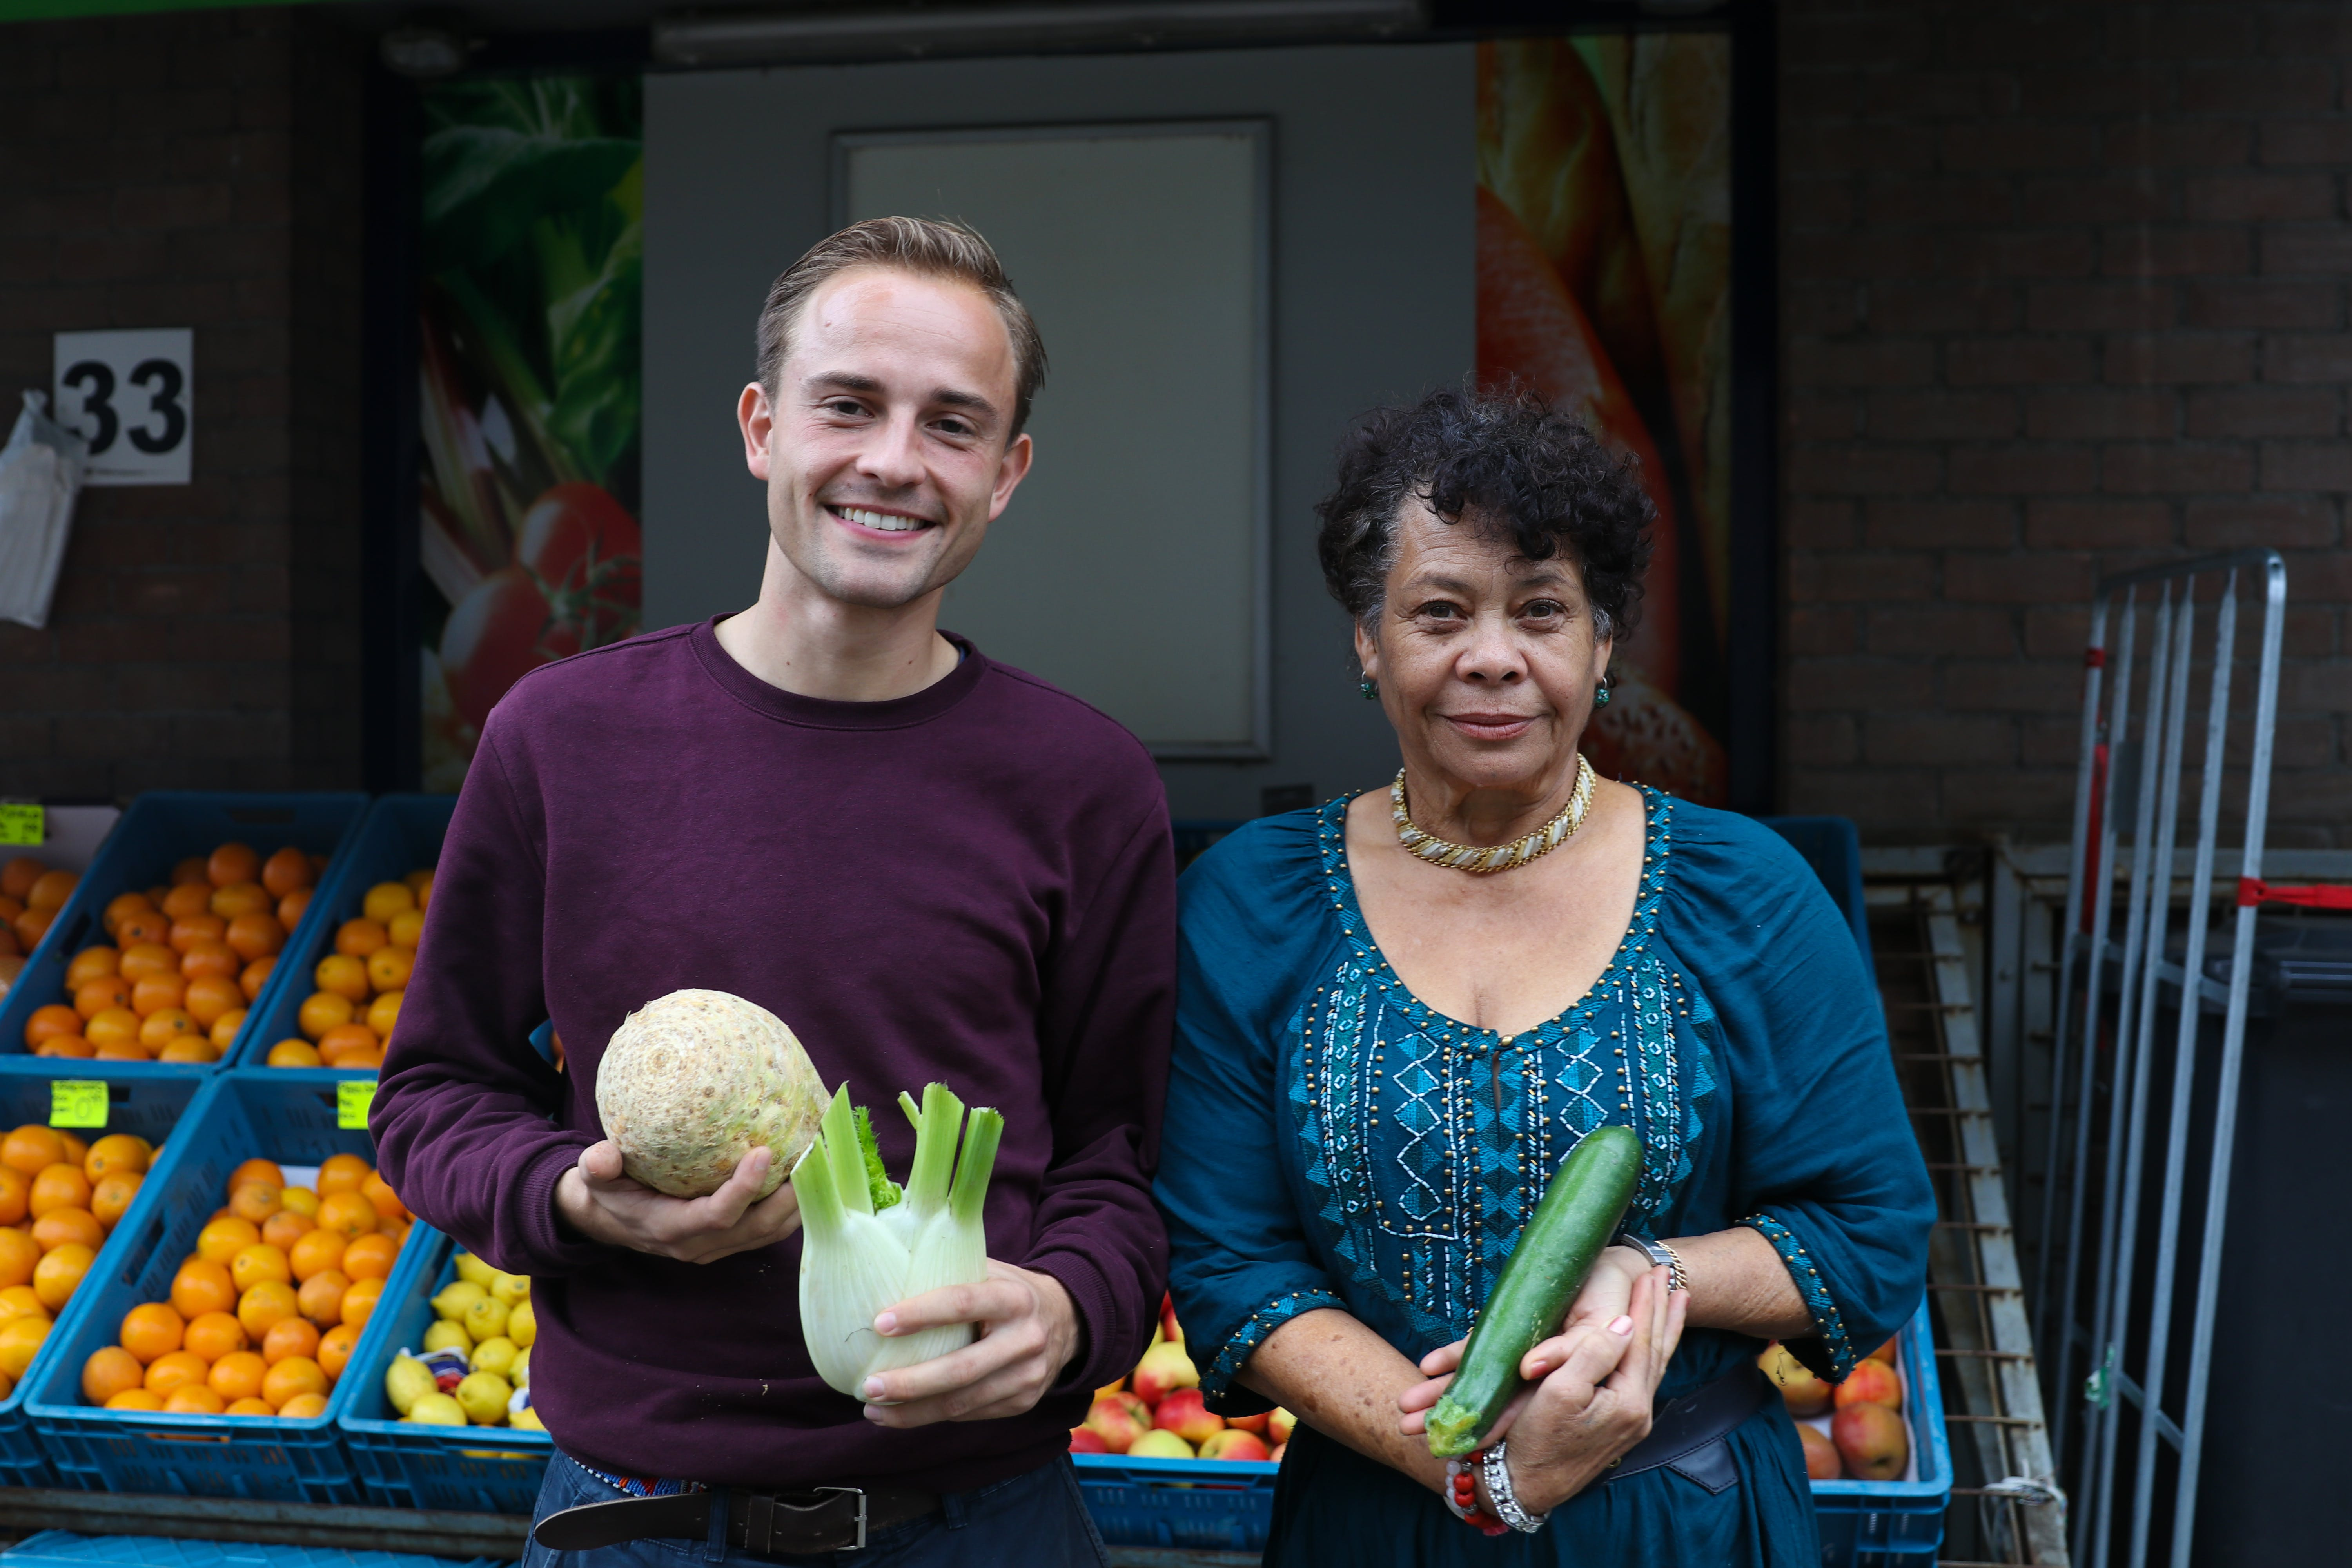 Charity in the Spotlight - Max from Oma's Soep on making soup to fight loneliness